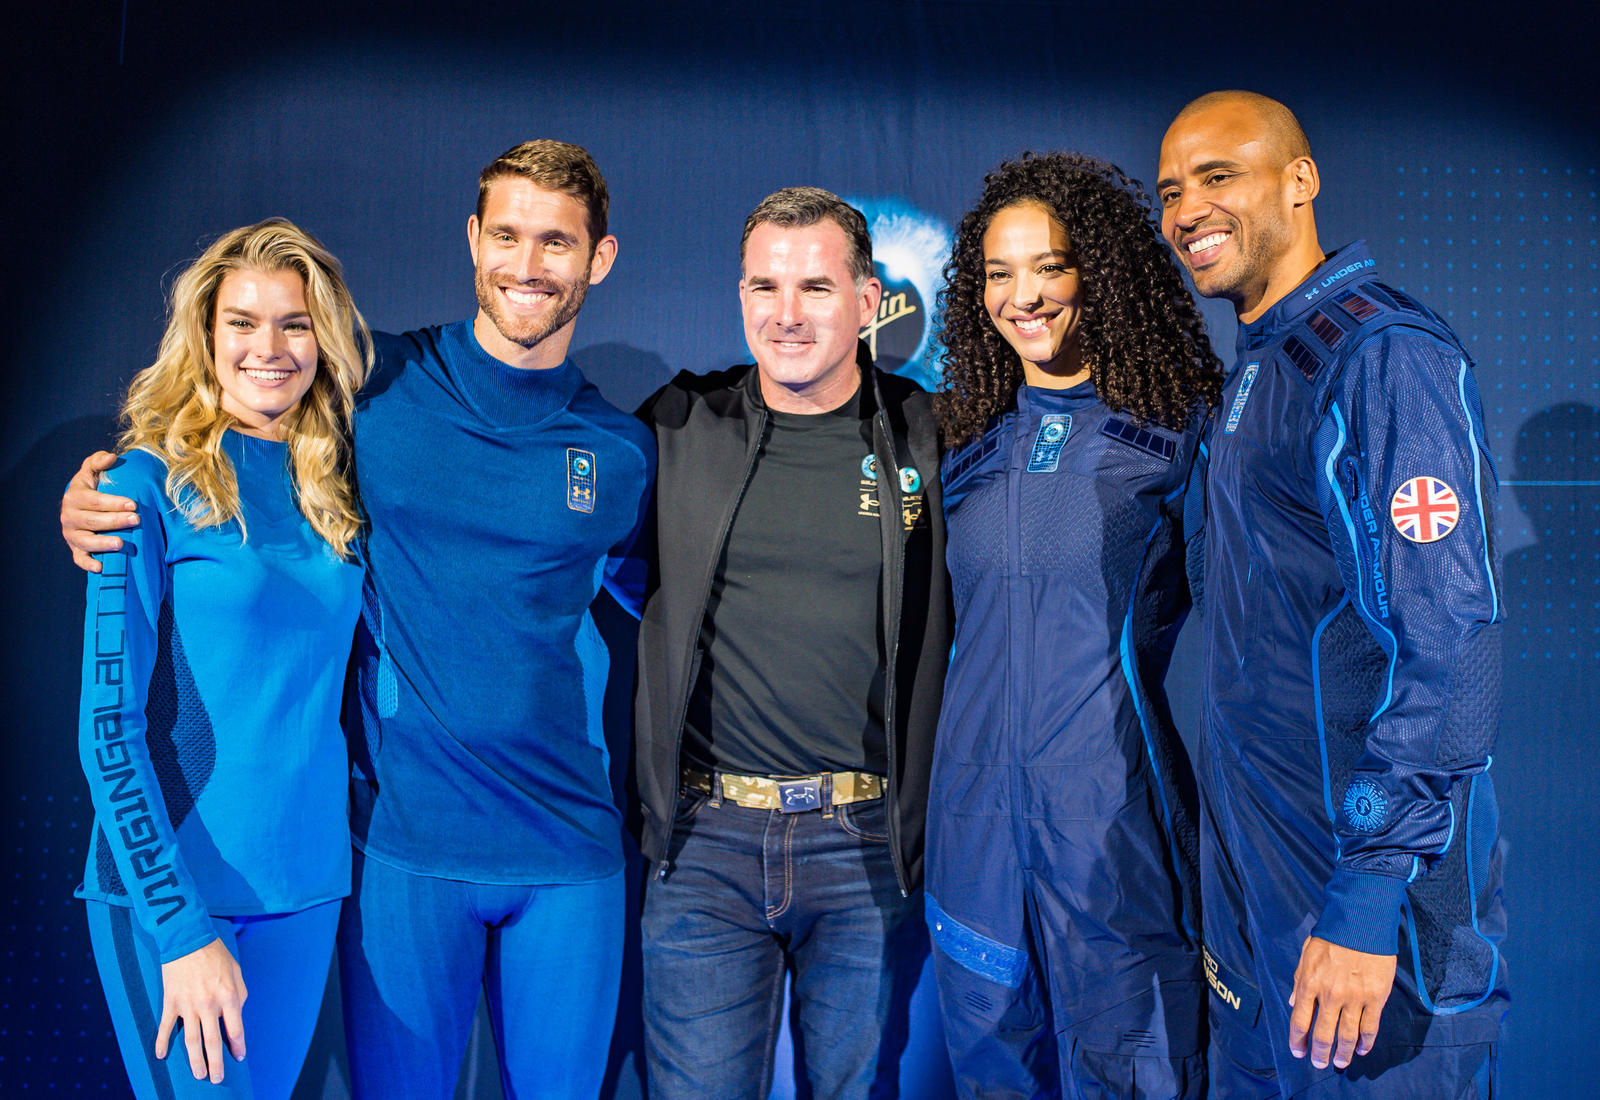 Under Armour Founder Kevin Plank stand with models wearing the UA-designed base layer and spacesuit.